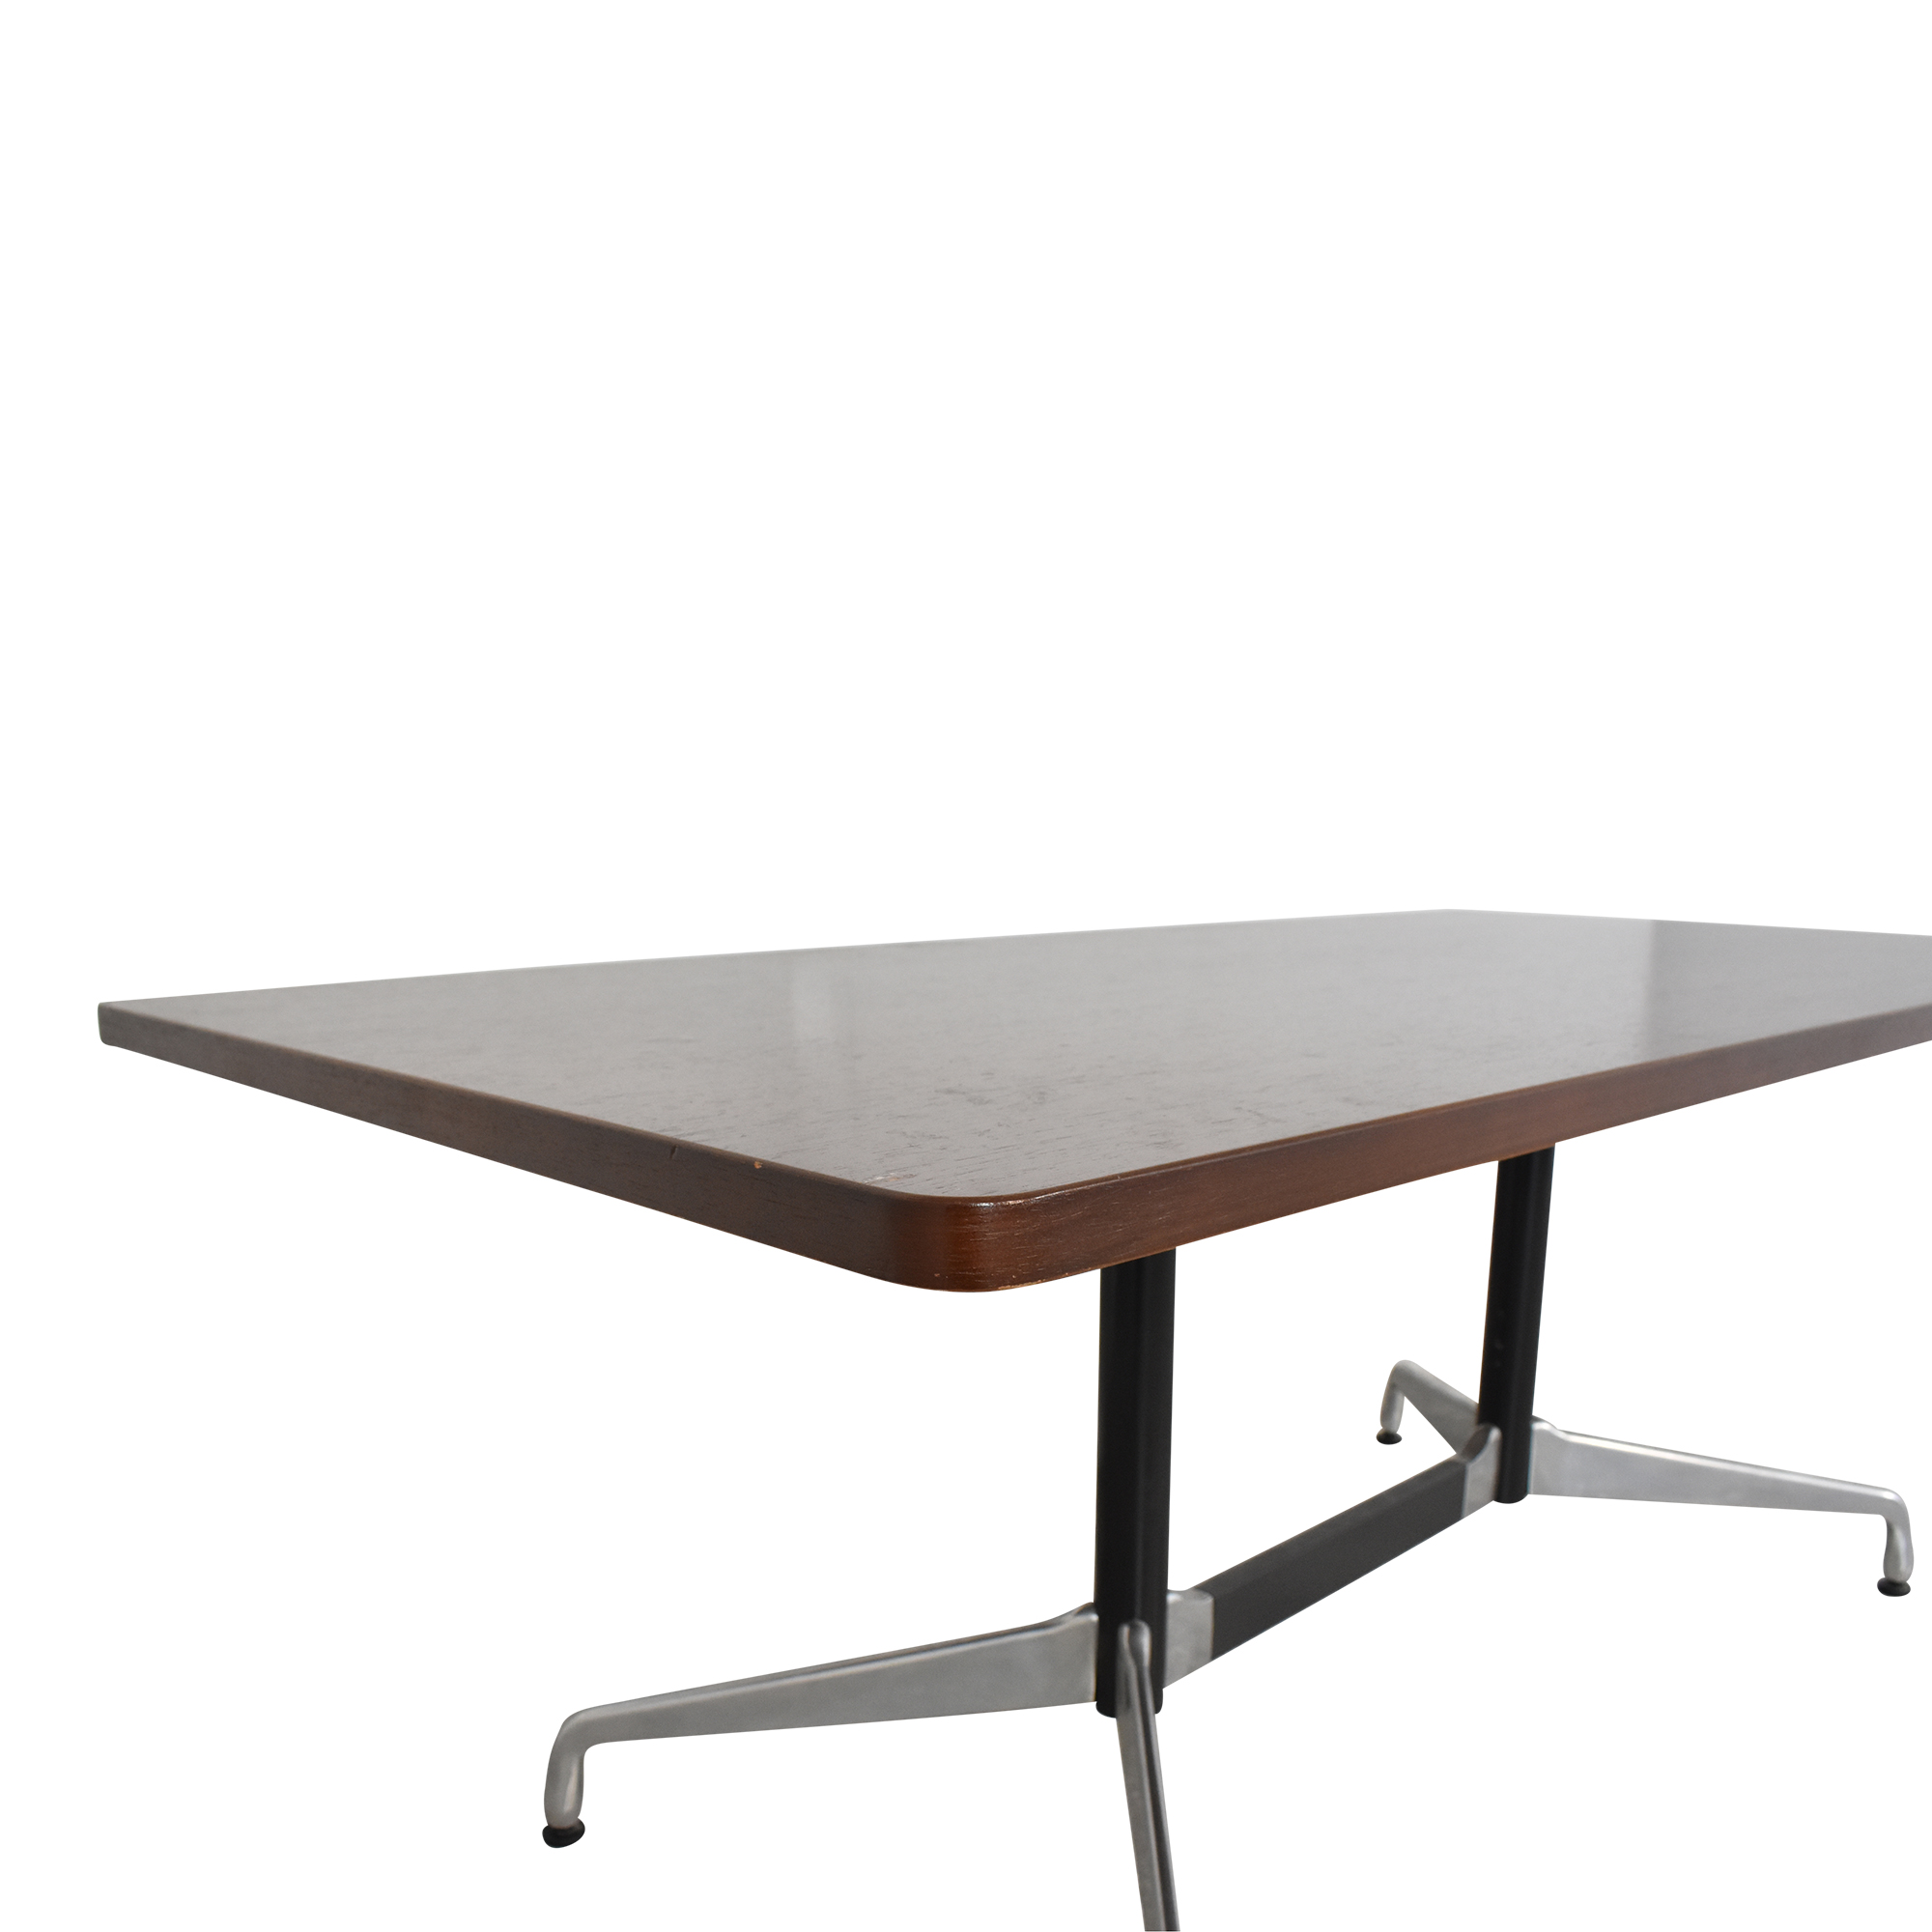 Herman Miller Herman Millier Eames Table with Rectangular Top and Segmented Base dimensions